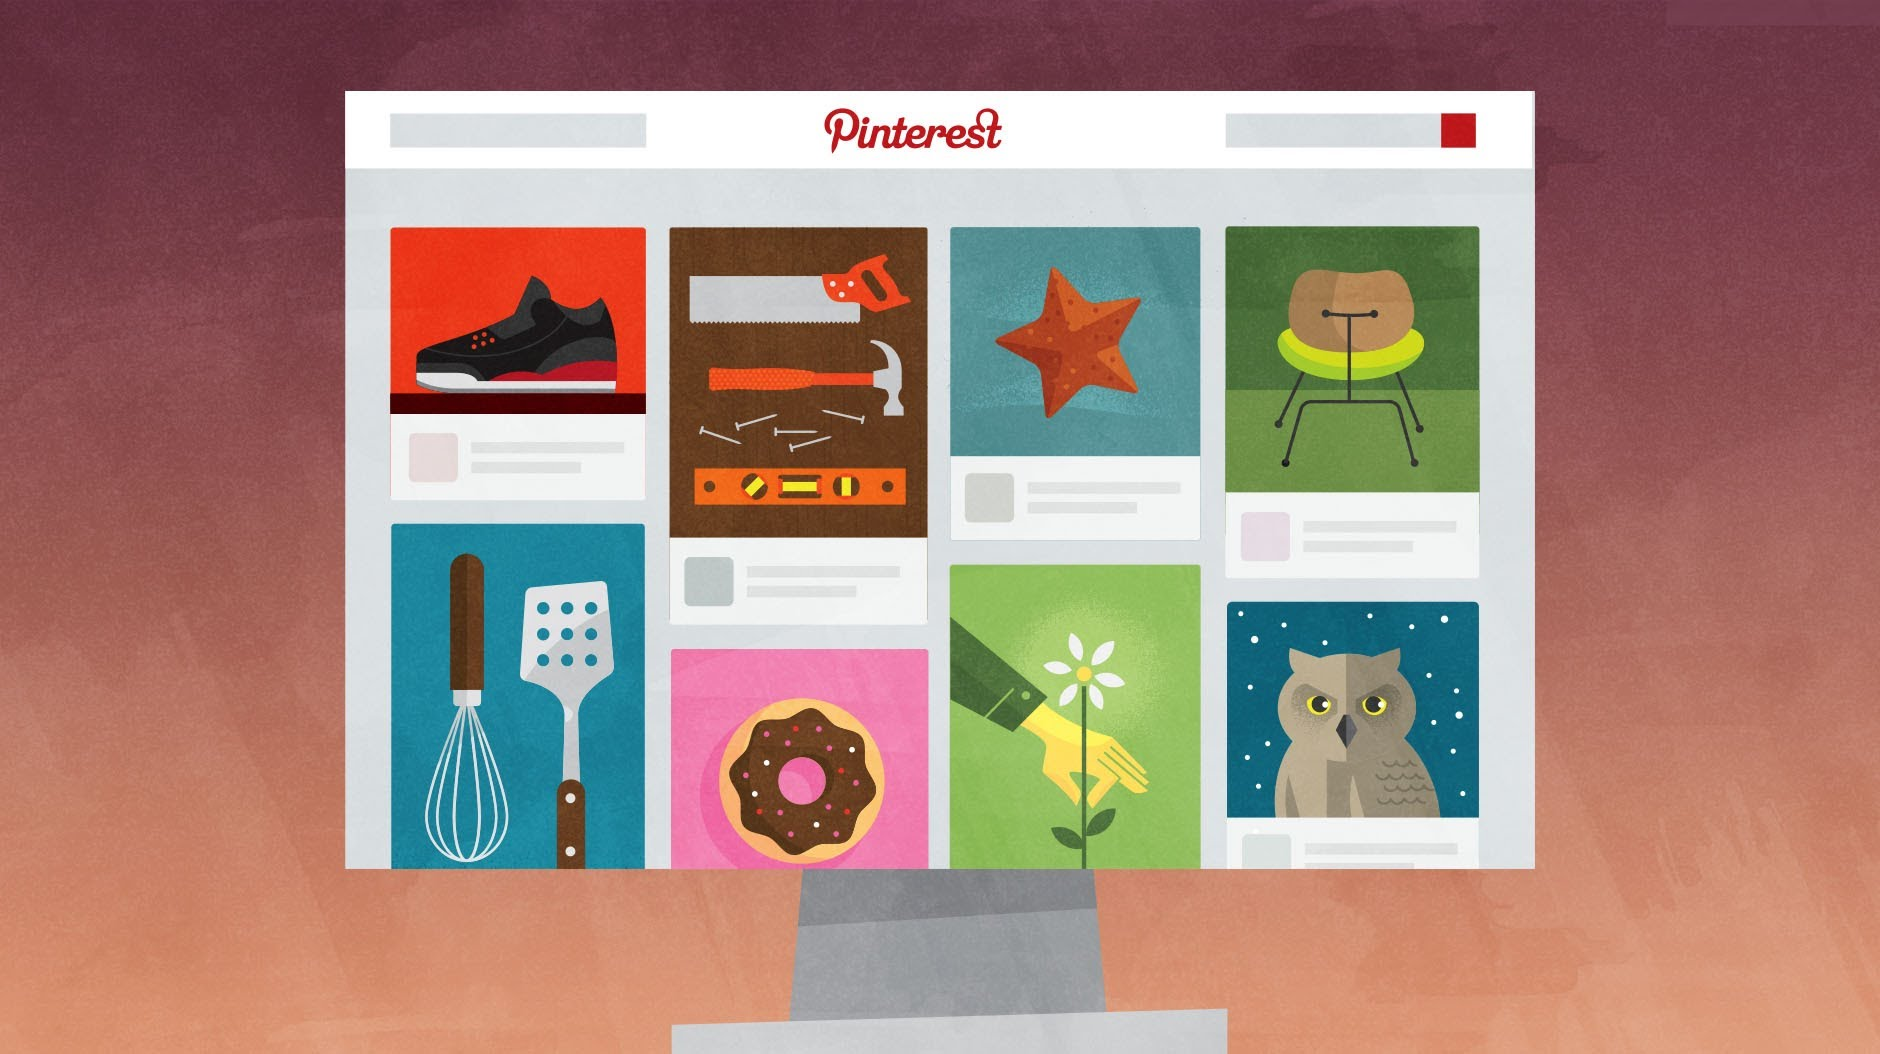 pinterest on desktop